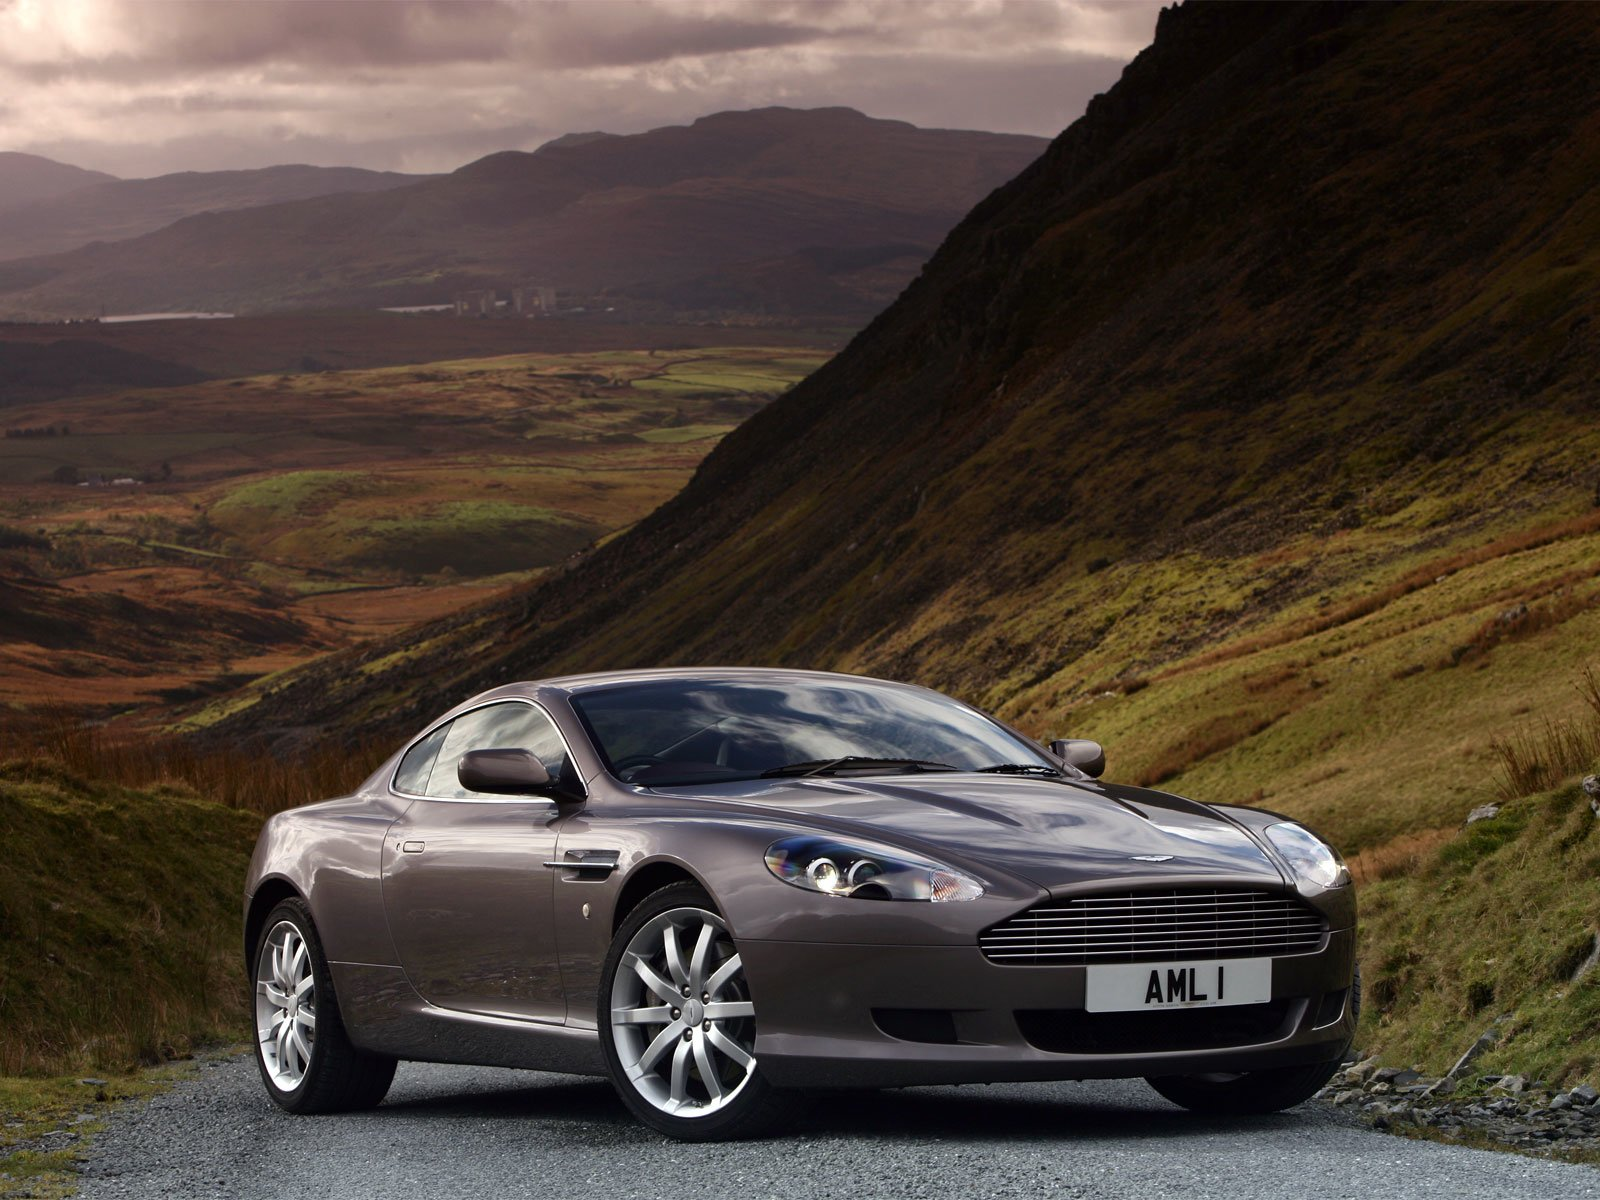 Latest Sport Cars Concept Cars Cars Gallery Aston Martin Db9 Free Download